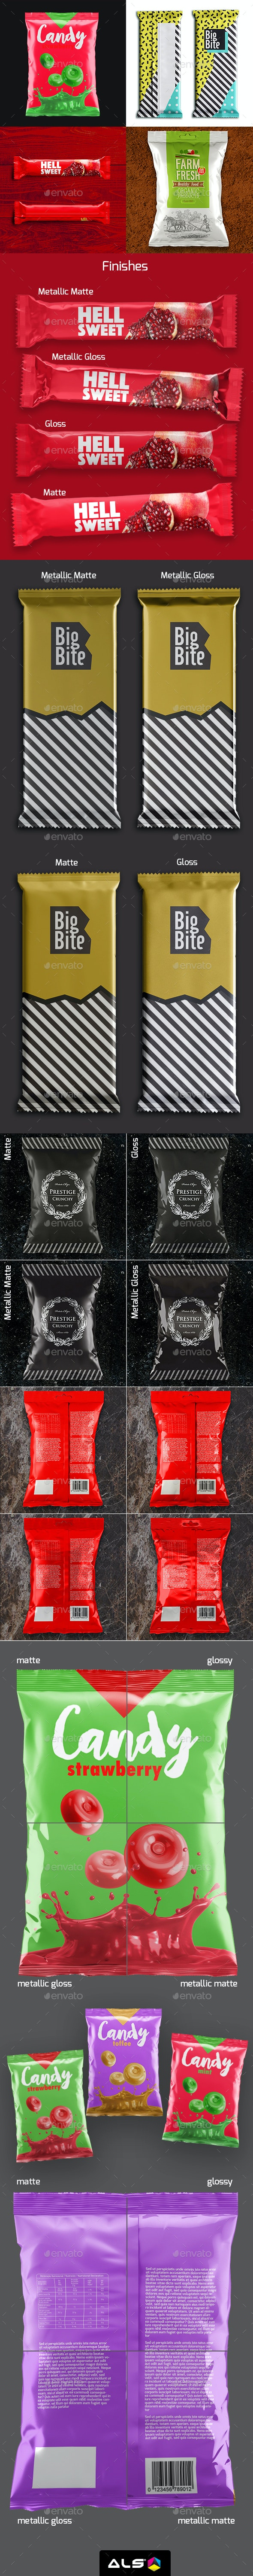 Packaging Bundle Mock-Up - Food and Drink Packaging